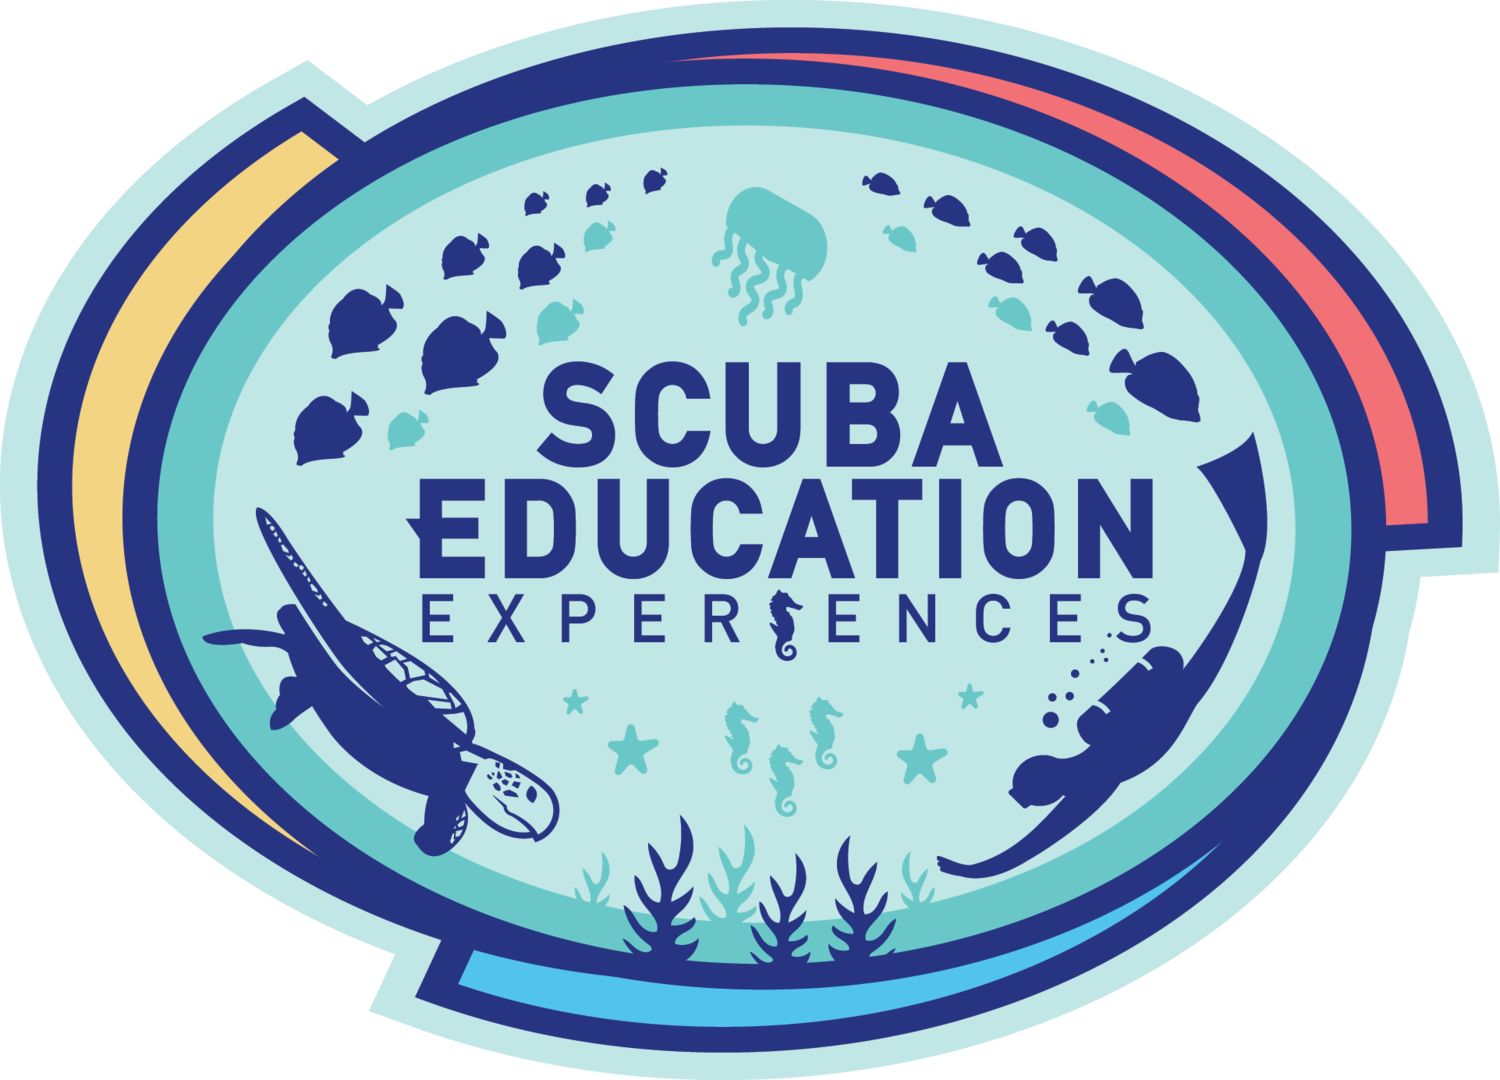 Scuba Education Experiences, LLC